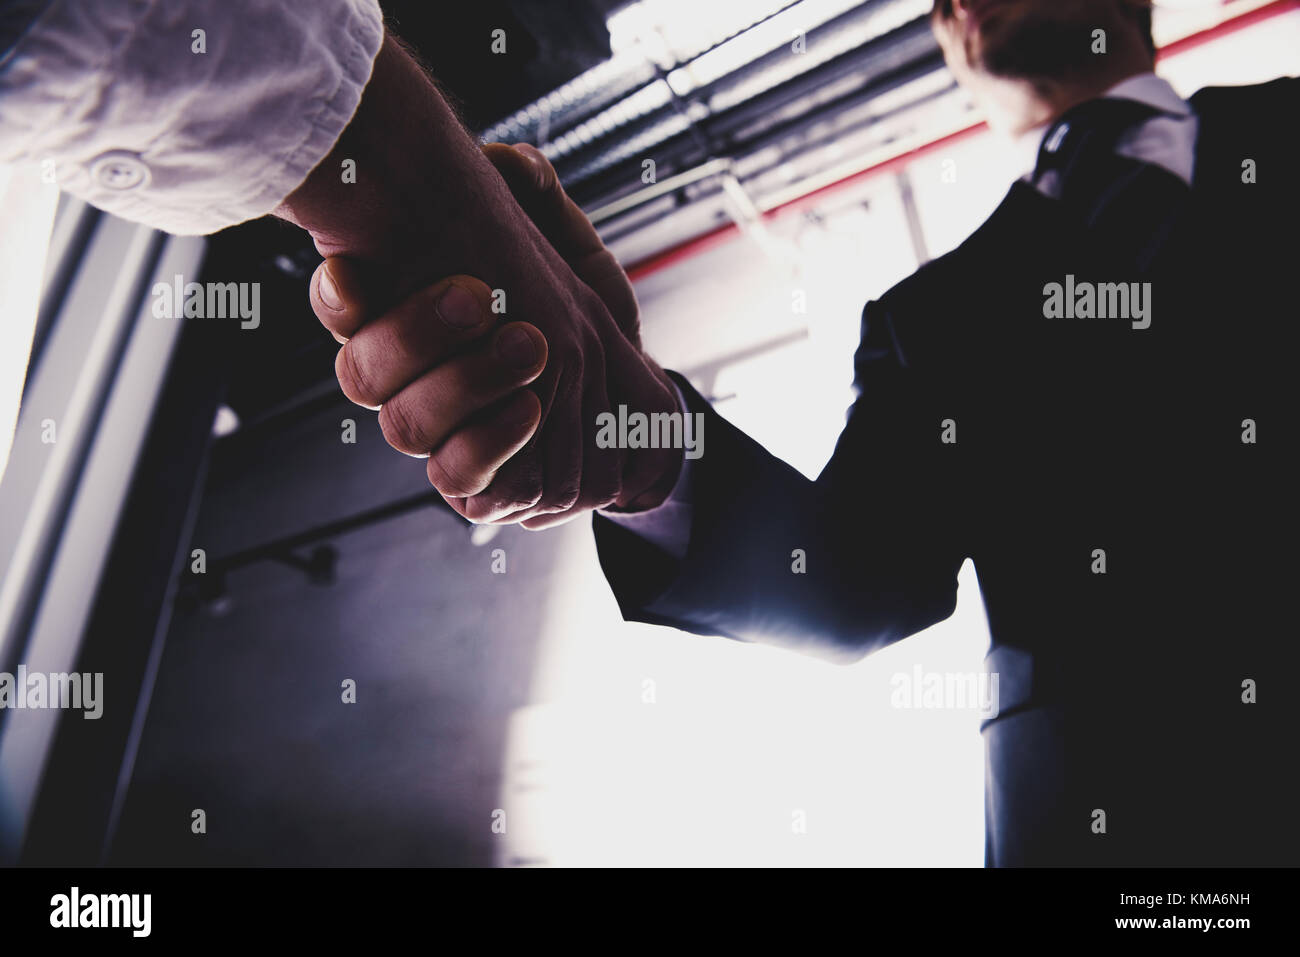 Handshaking business person in office. concept of teamwork and partnership - Stock Image